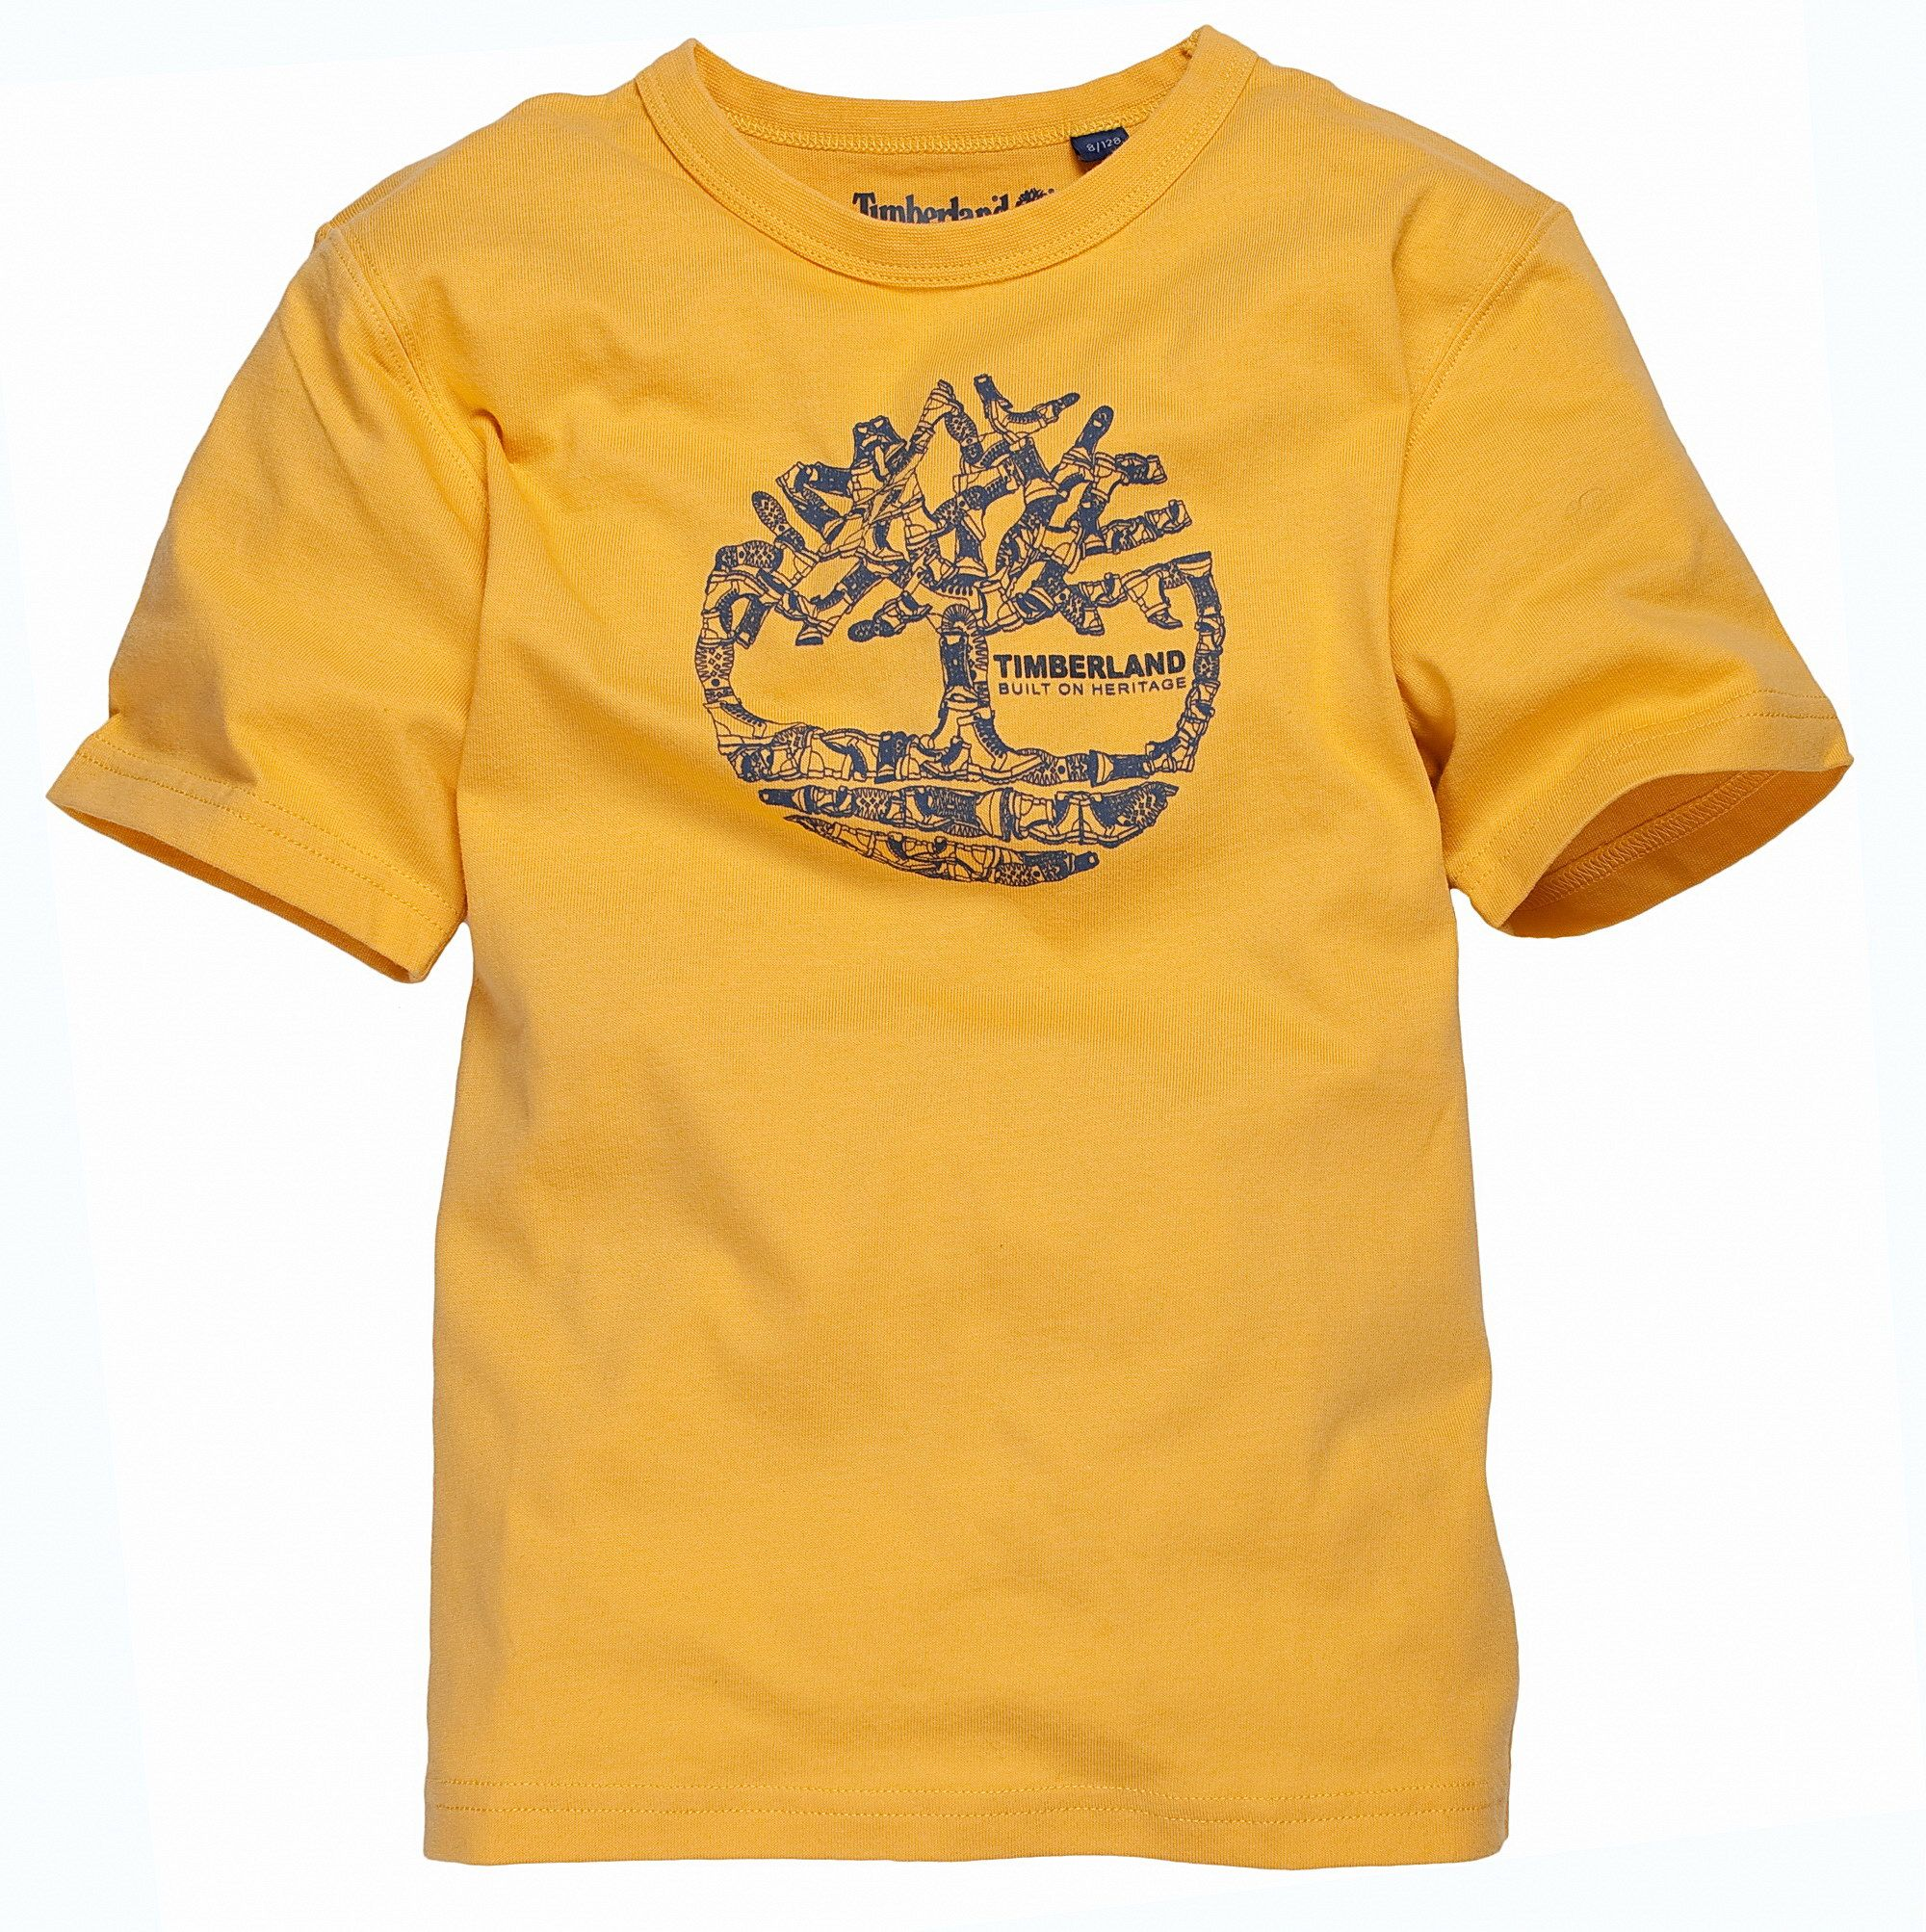 Timberland Short-sleeved T-shirt 14yrs - Yellow `14 yrs product image